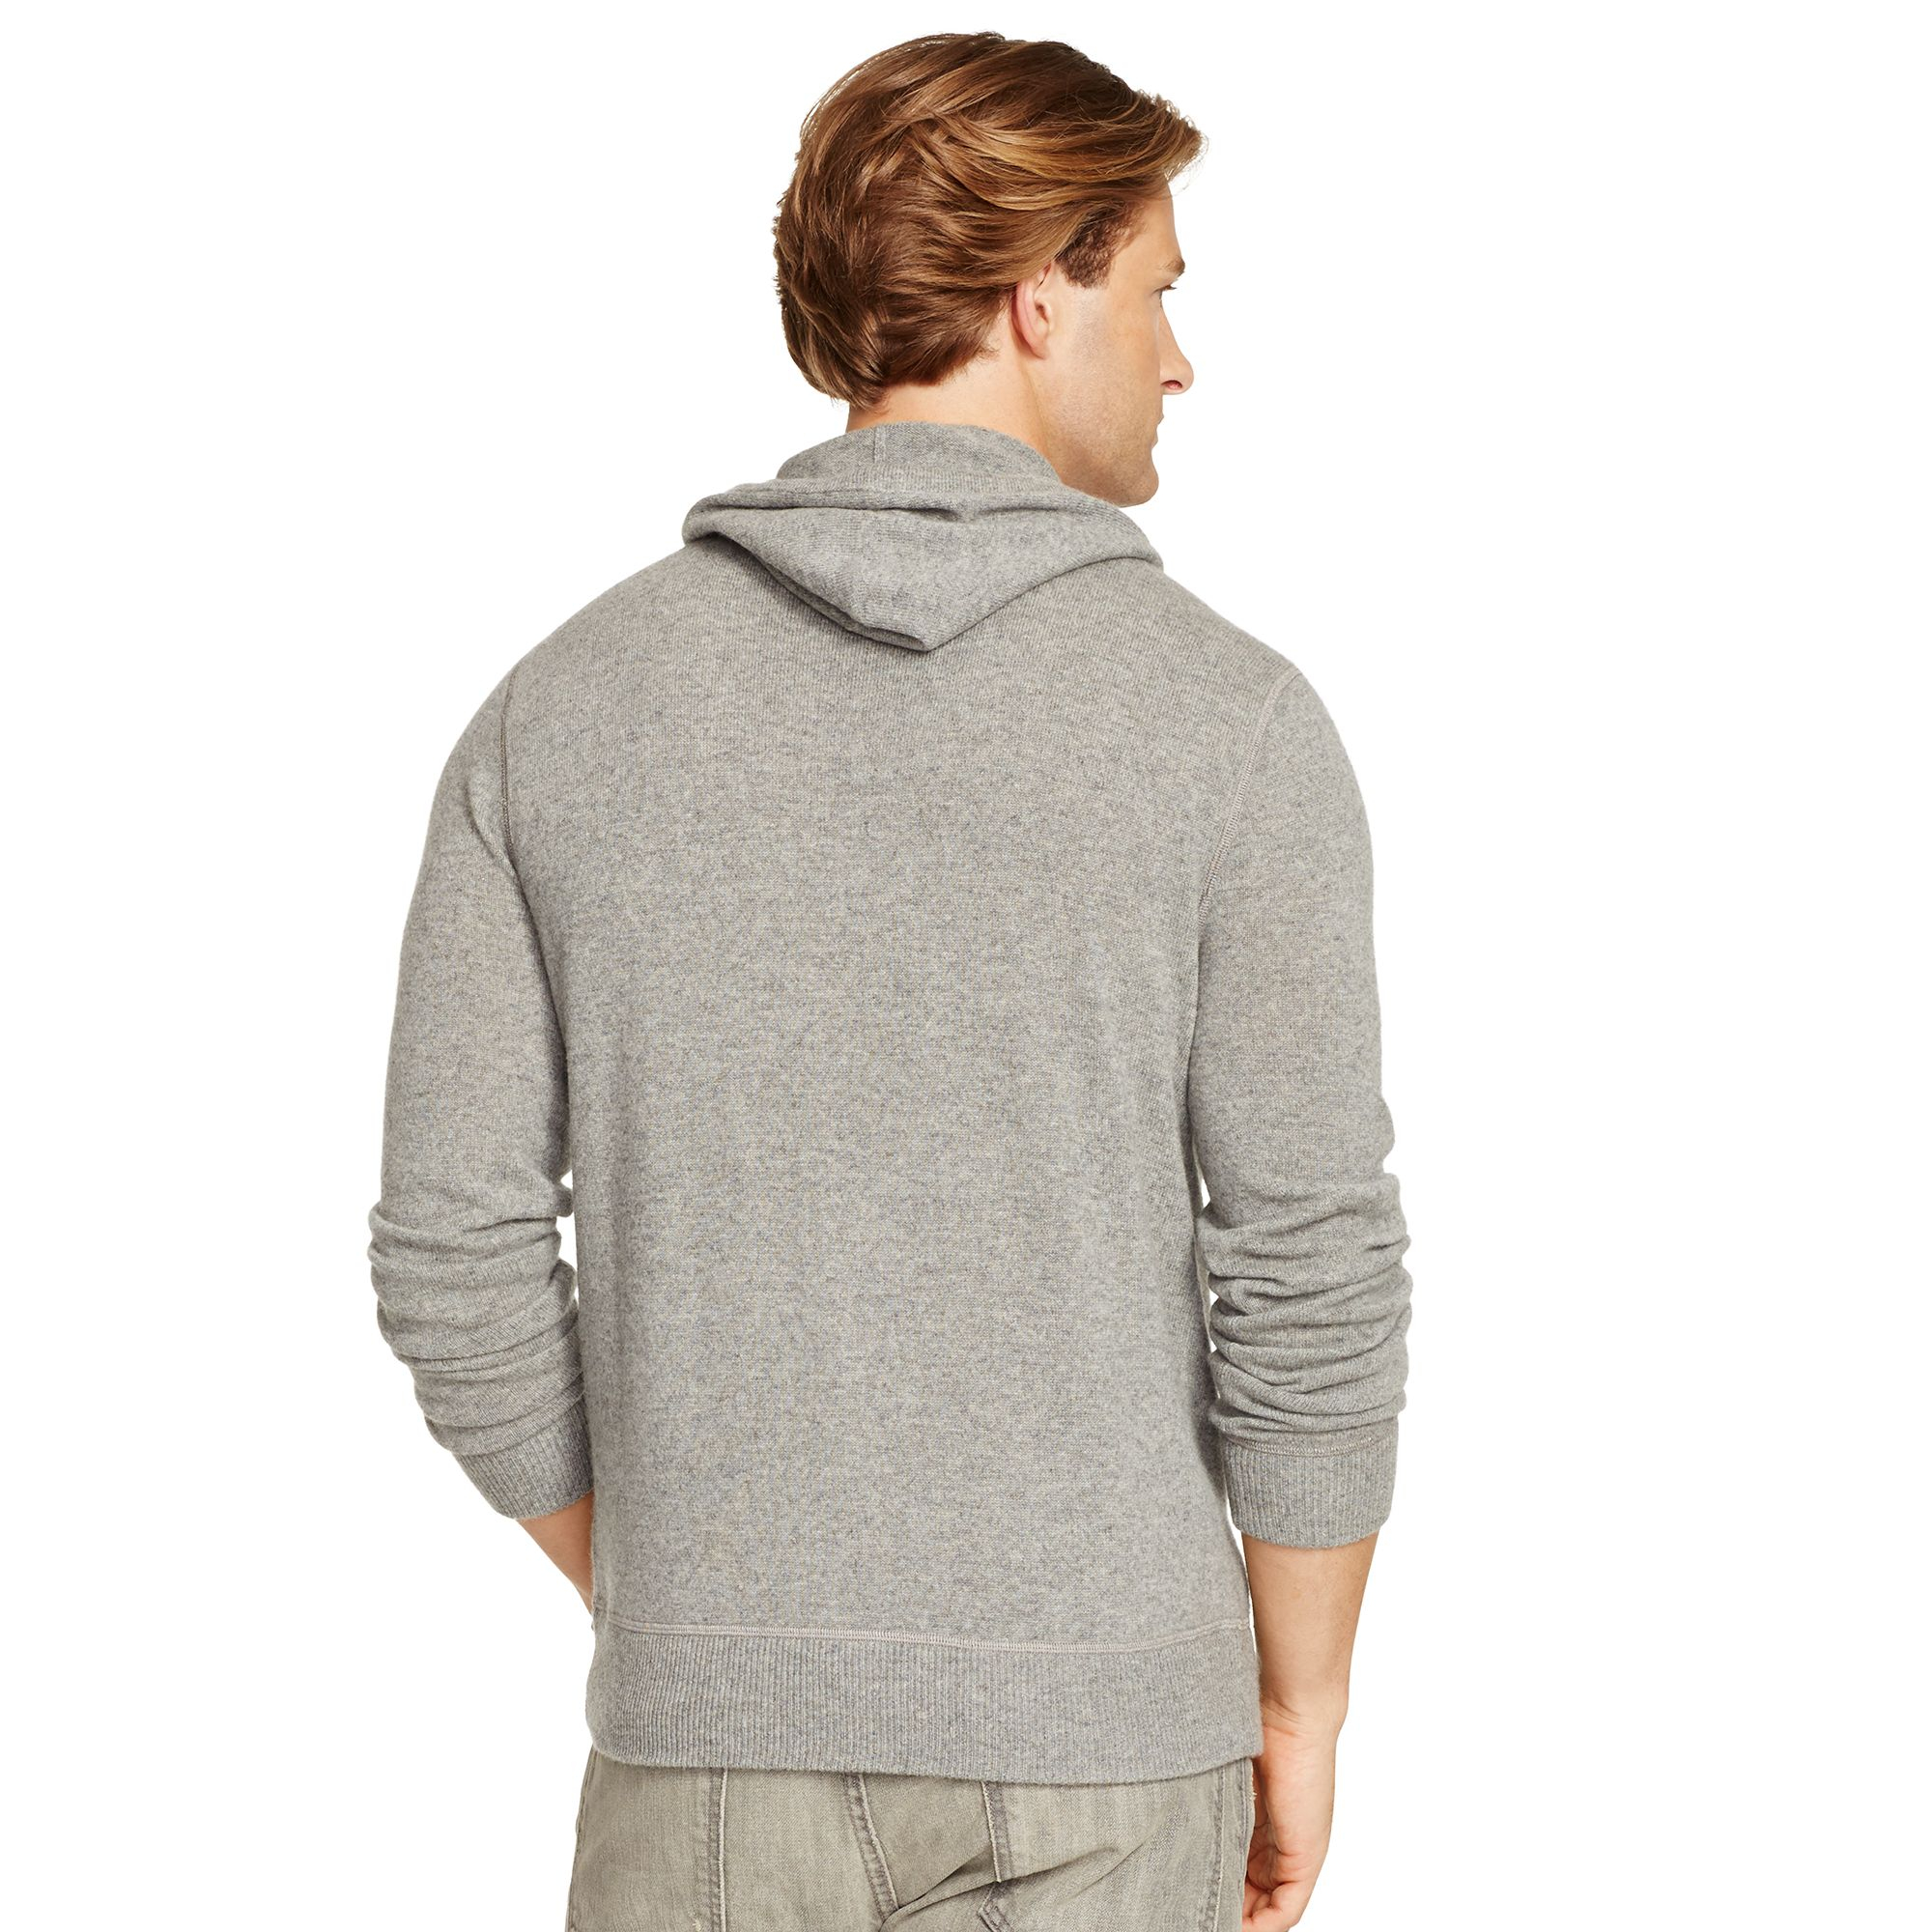 Polo hoodies for men